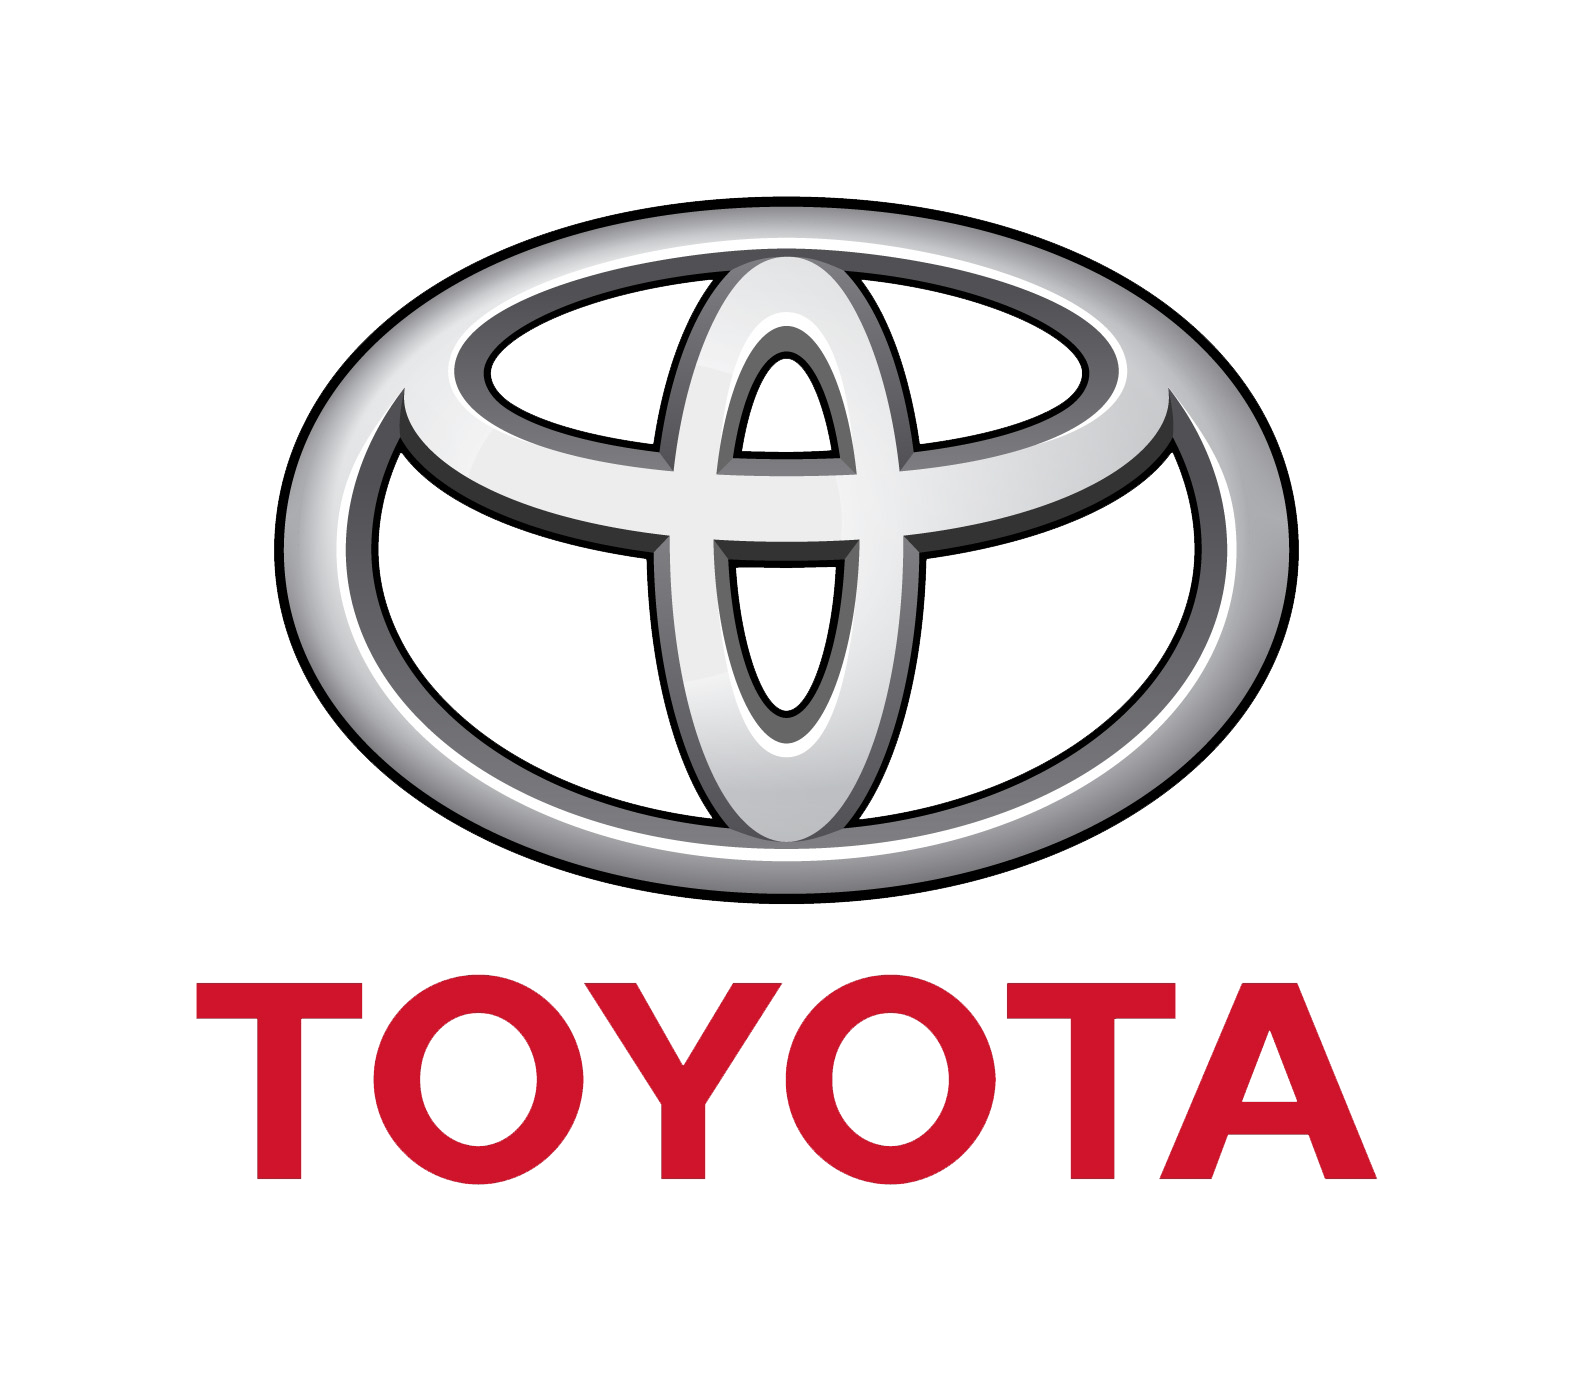 Top Toyota Logo Png Images - Toyota Vector, Transparent background PNG HD thumbnail